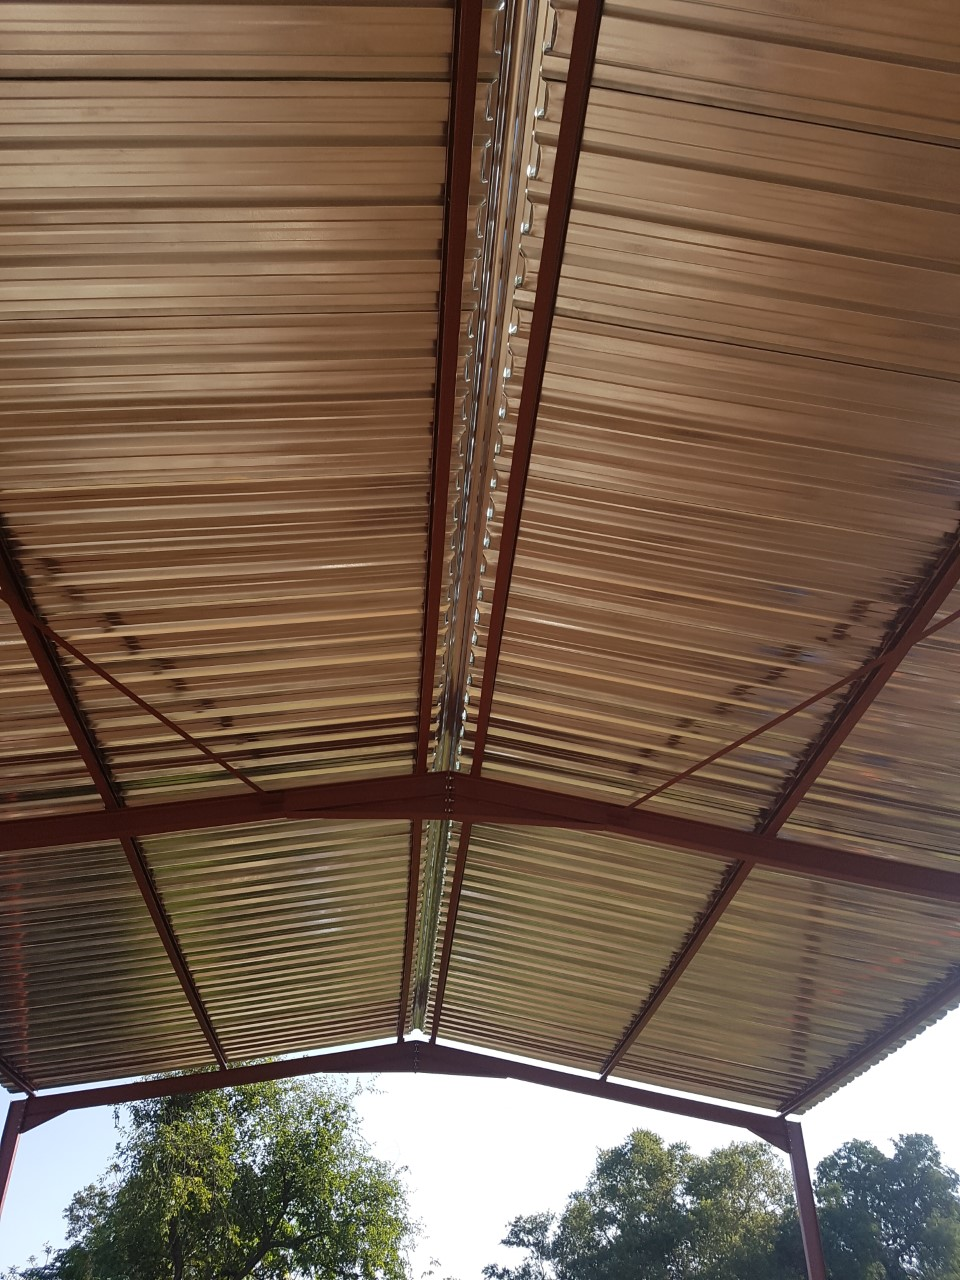 SSS Steel Structures and Construction (Pty) Ltd